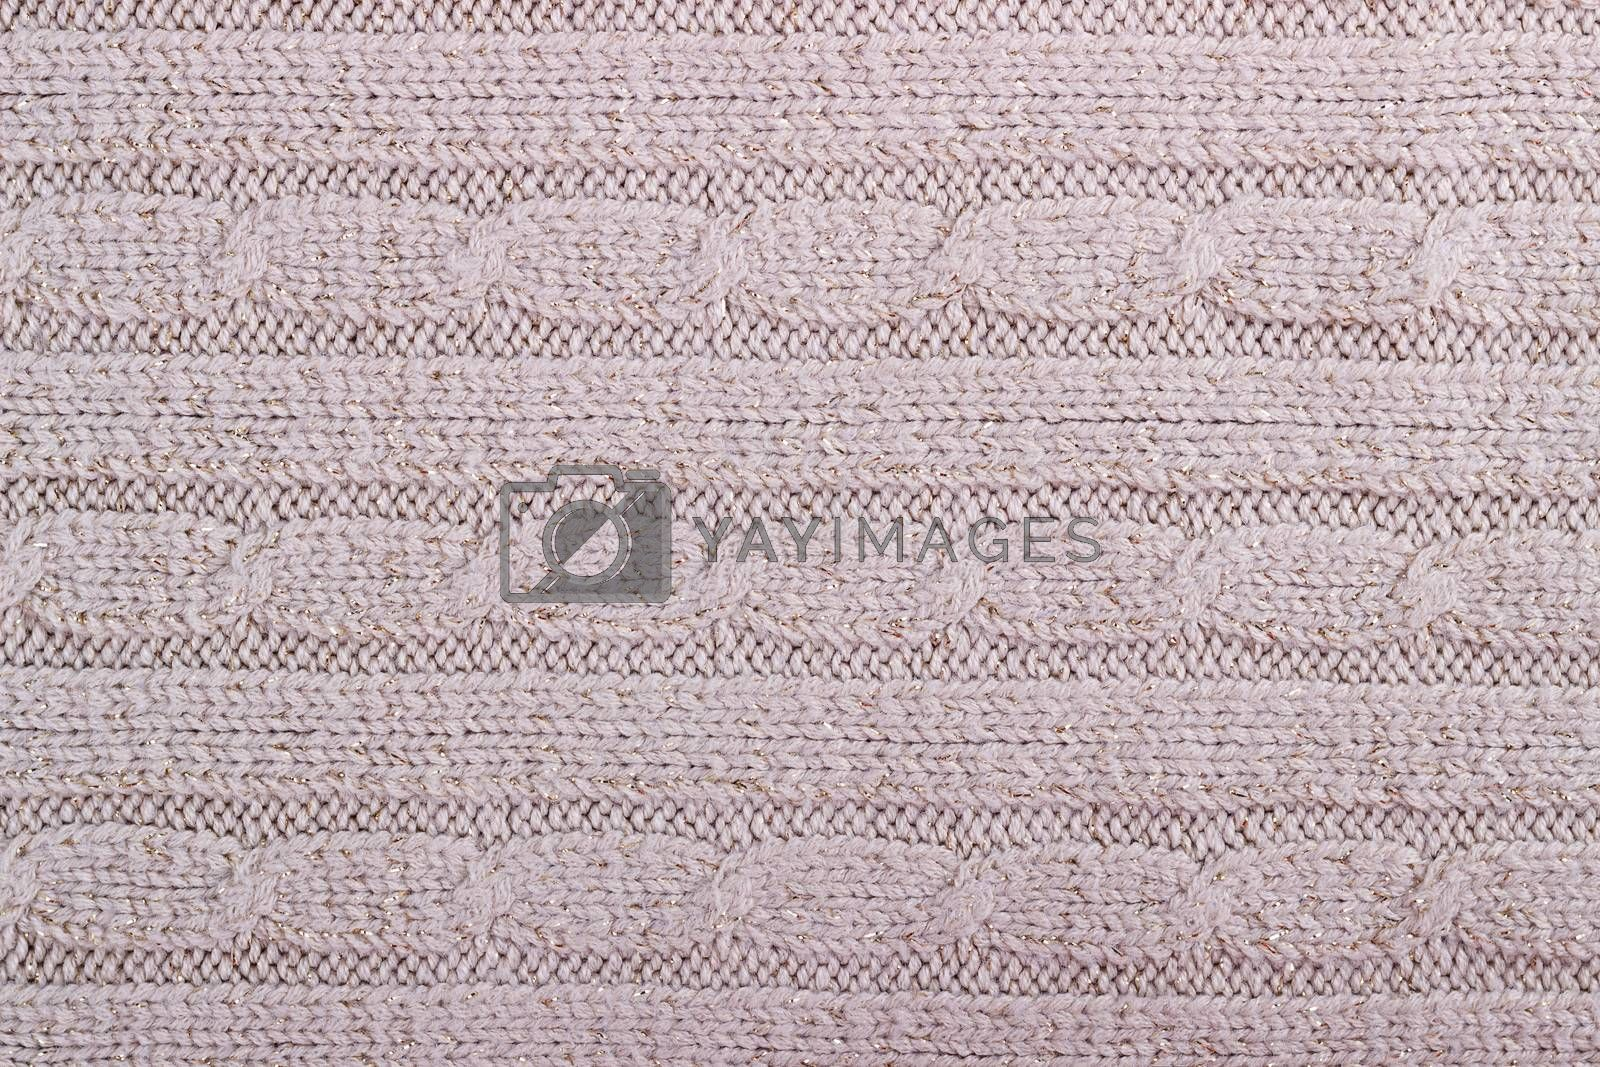 Texture of beige knitted woolen fabric for wallpaper and an abstract background